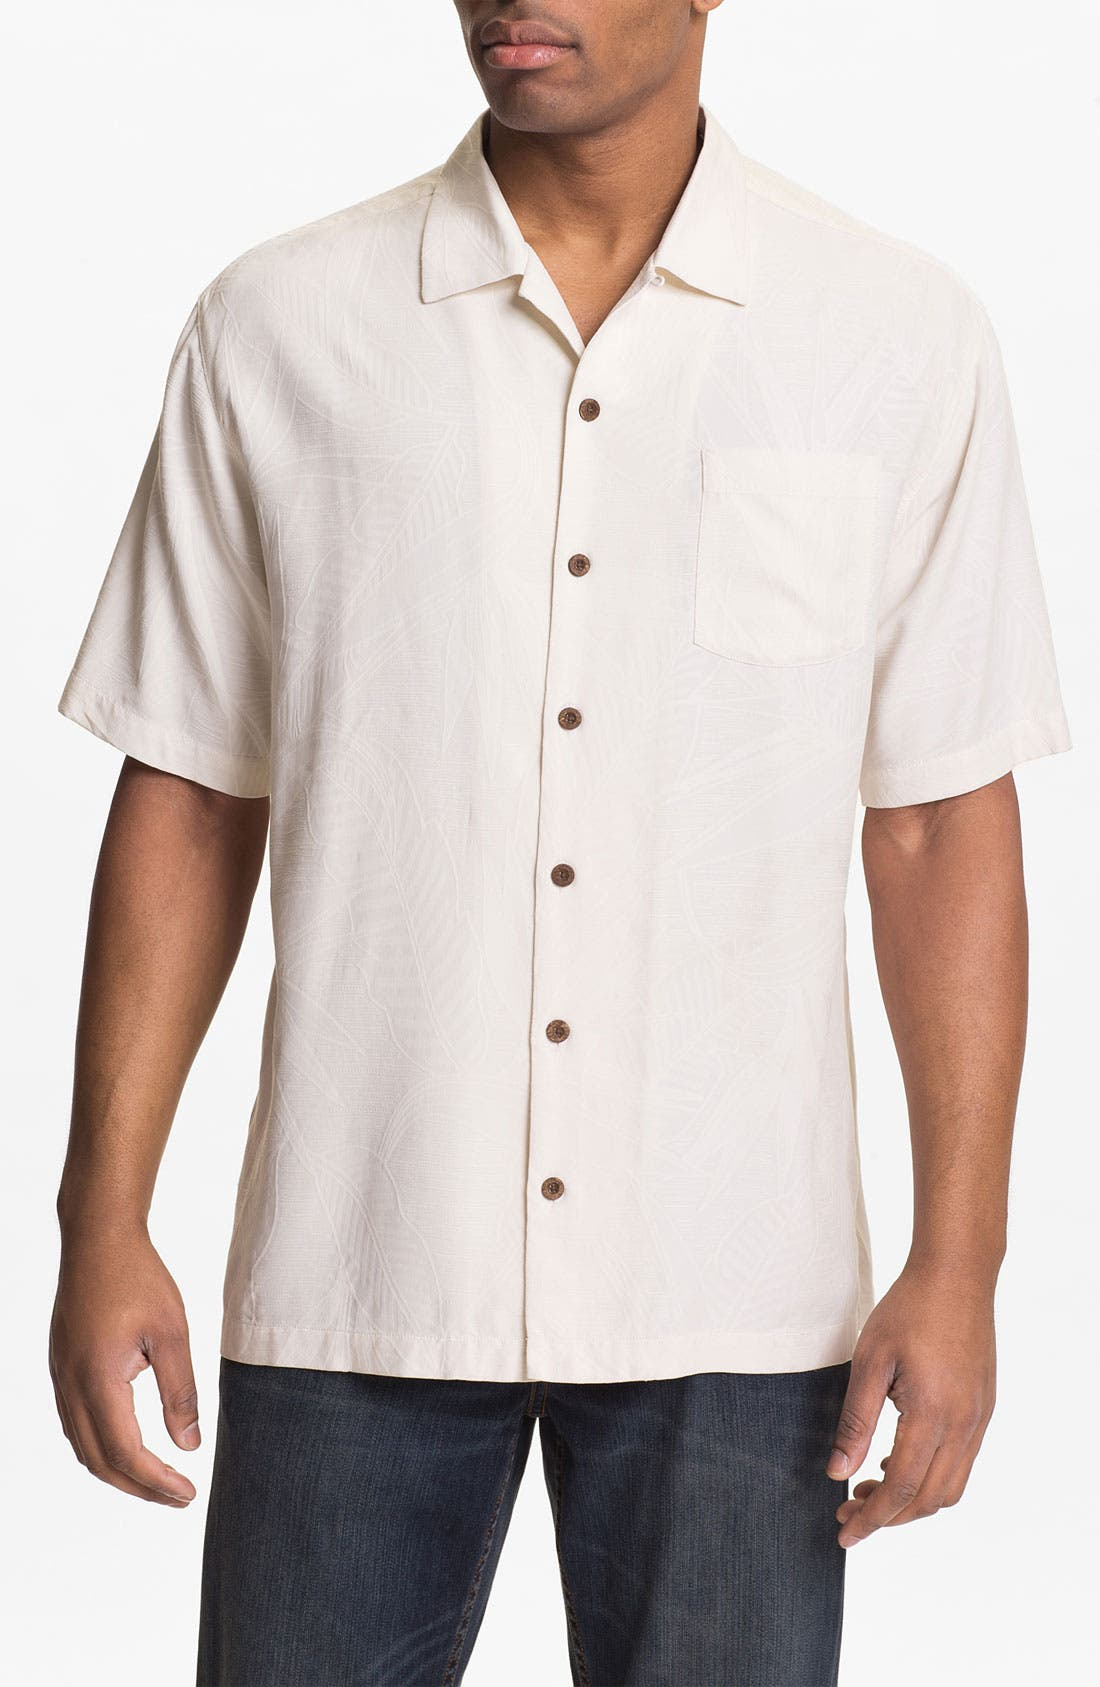 Main Image - Tommy Bahama 'Bird It Through the Grapevine' Campshirt (Big & Tall)